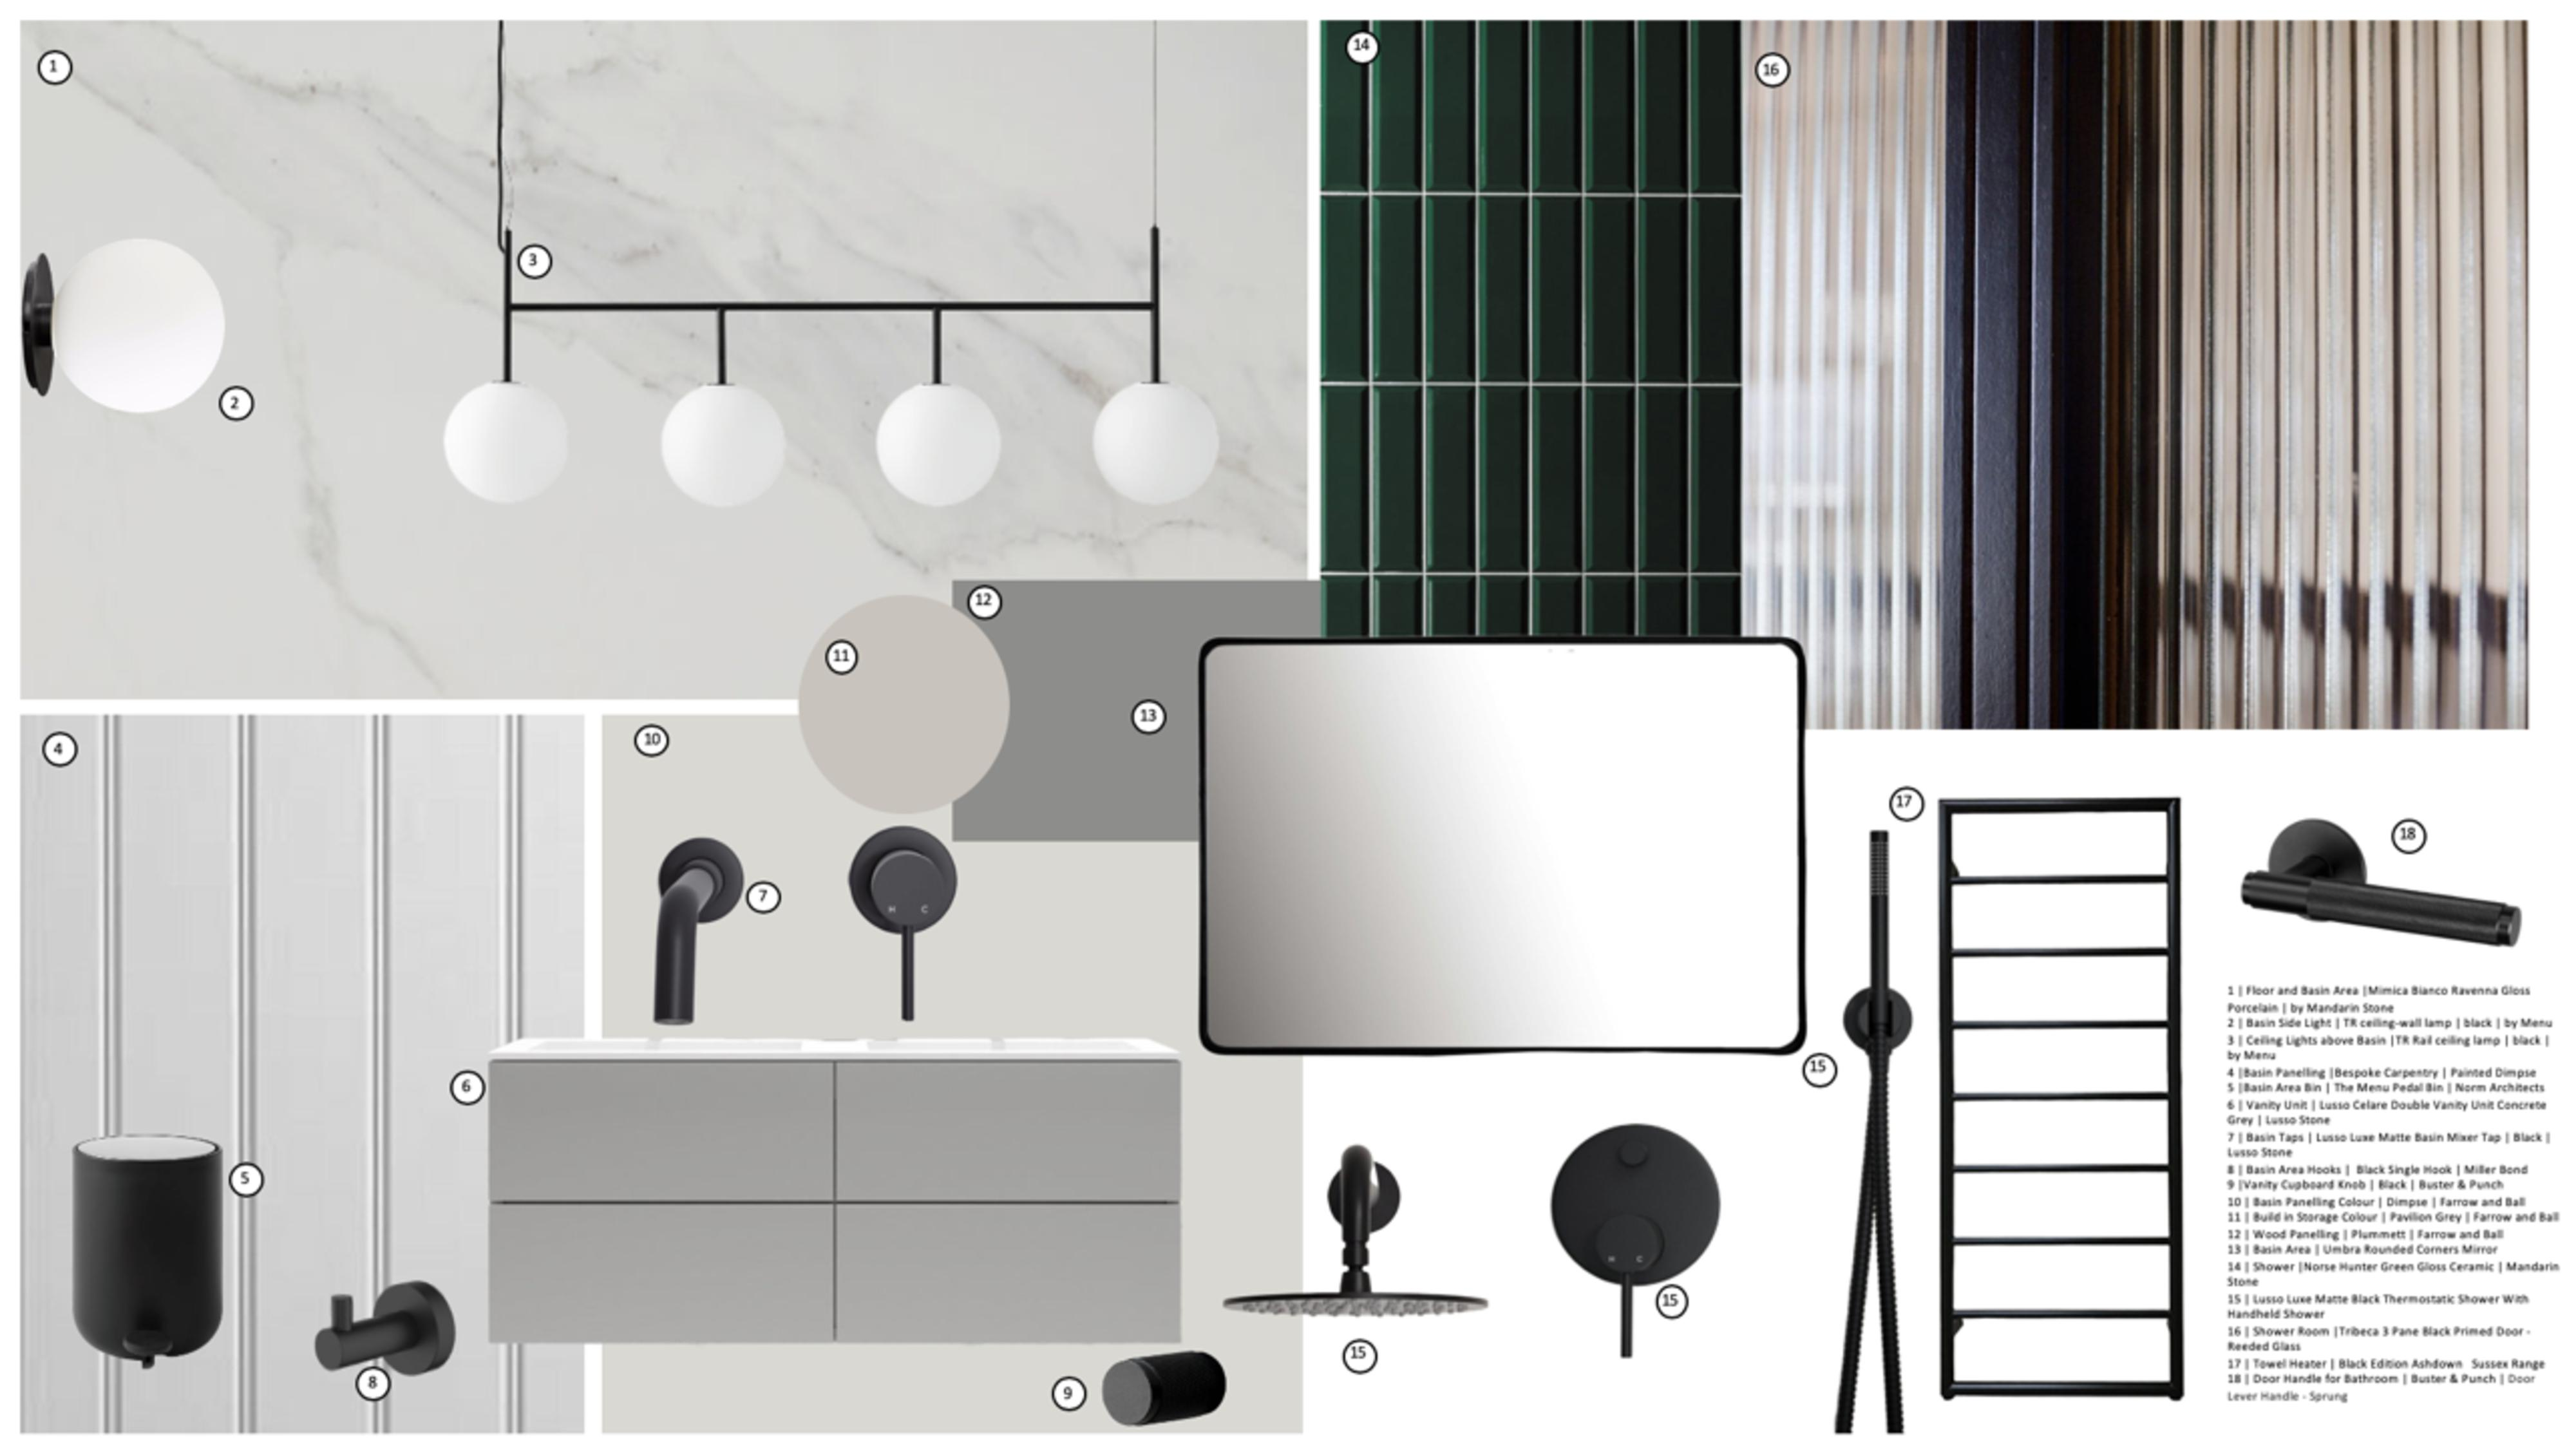 Digital image of concept board of ideas including wall lights, mirrors and tiles